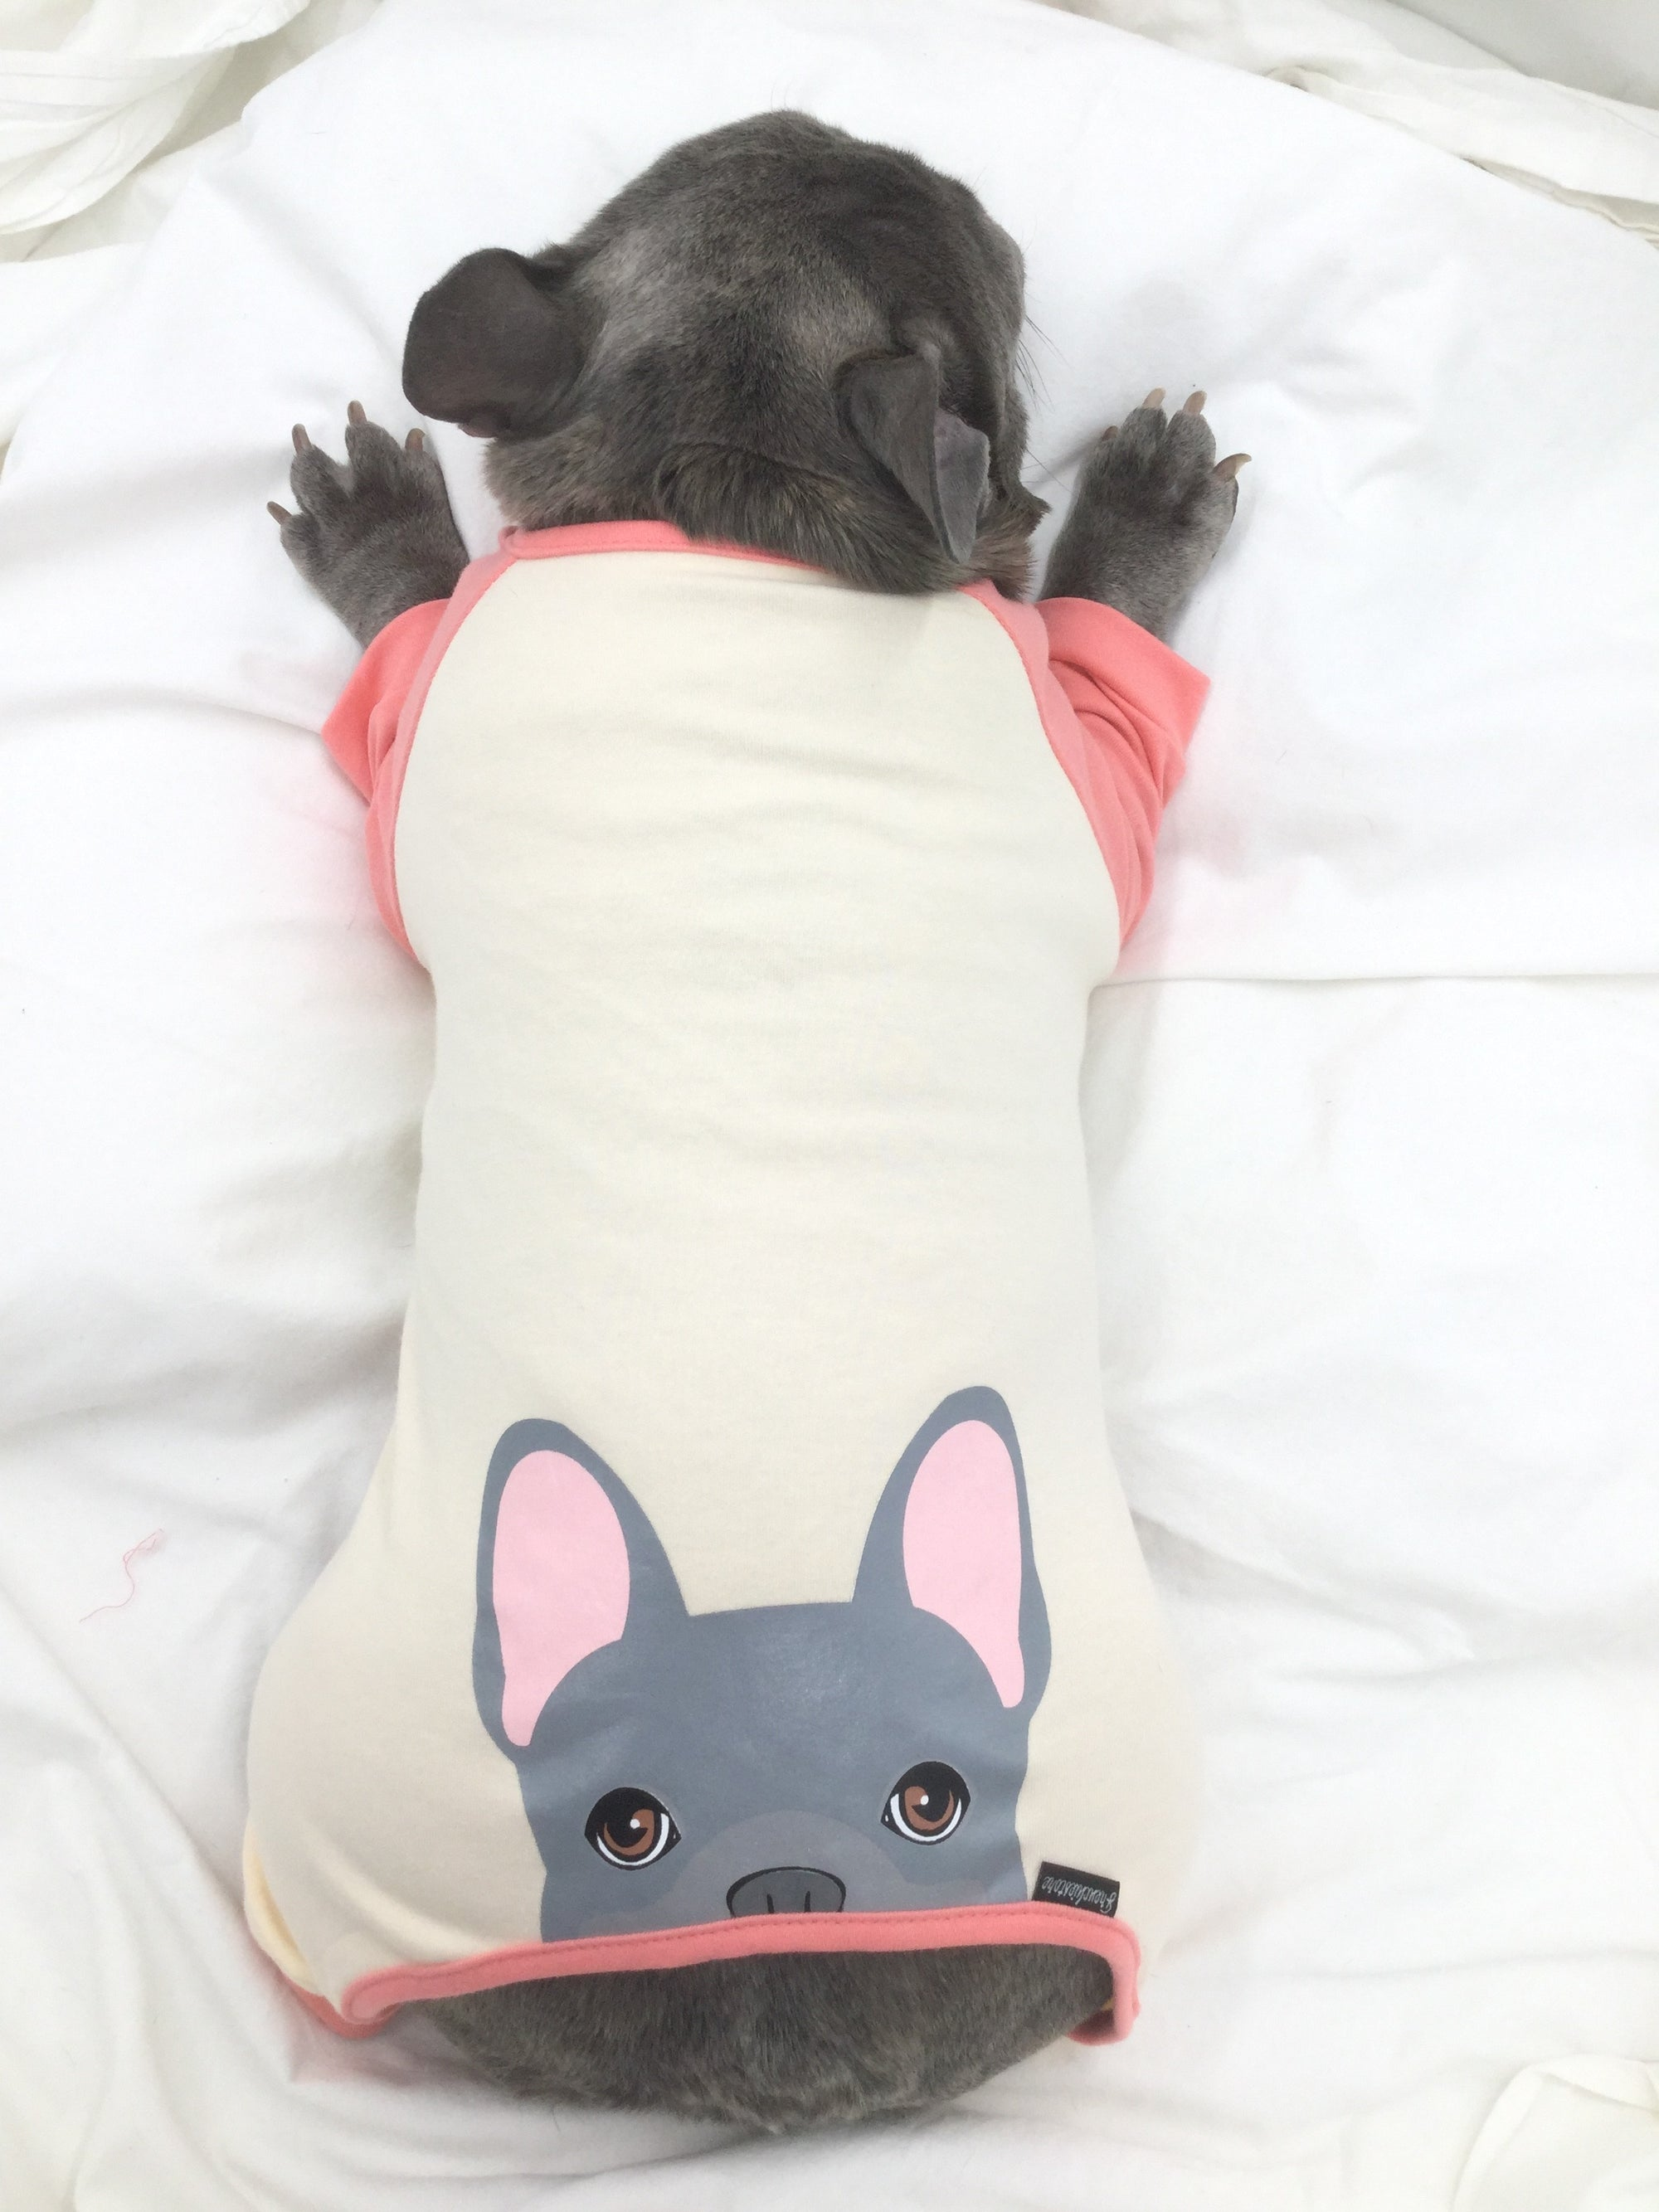 French Bulldog Pajamas in Coral | Frenchie Clothing | Blue Frenchie dog, Frenchie Dog, French Bulldog pet products